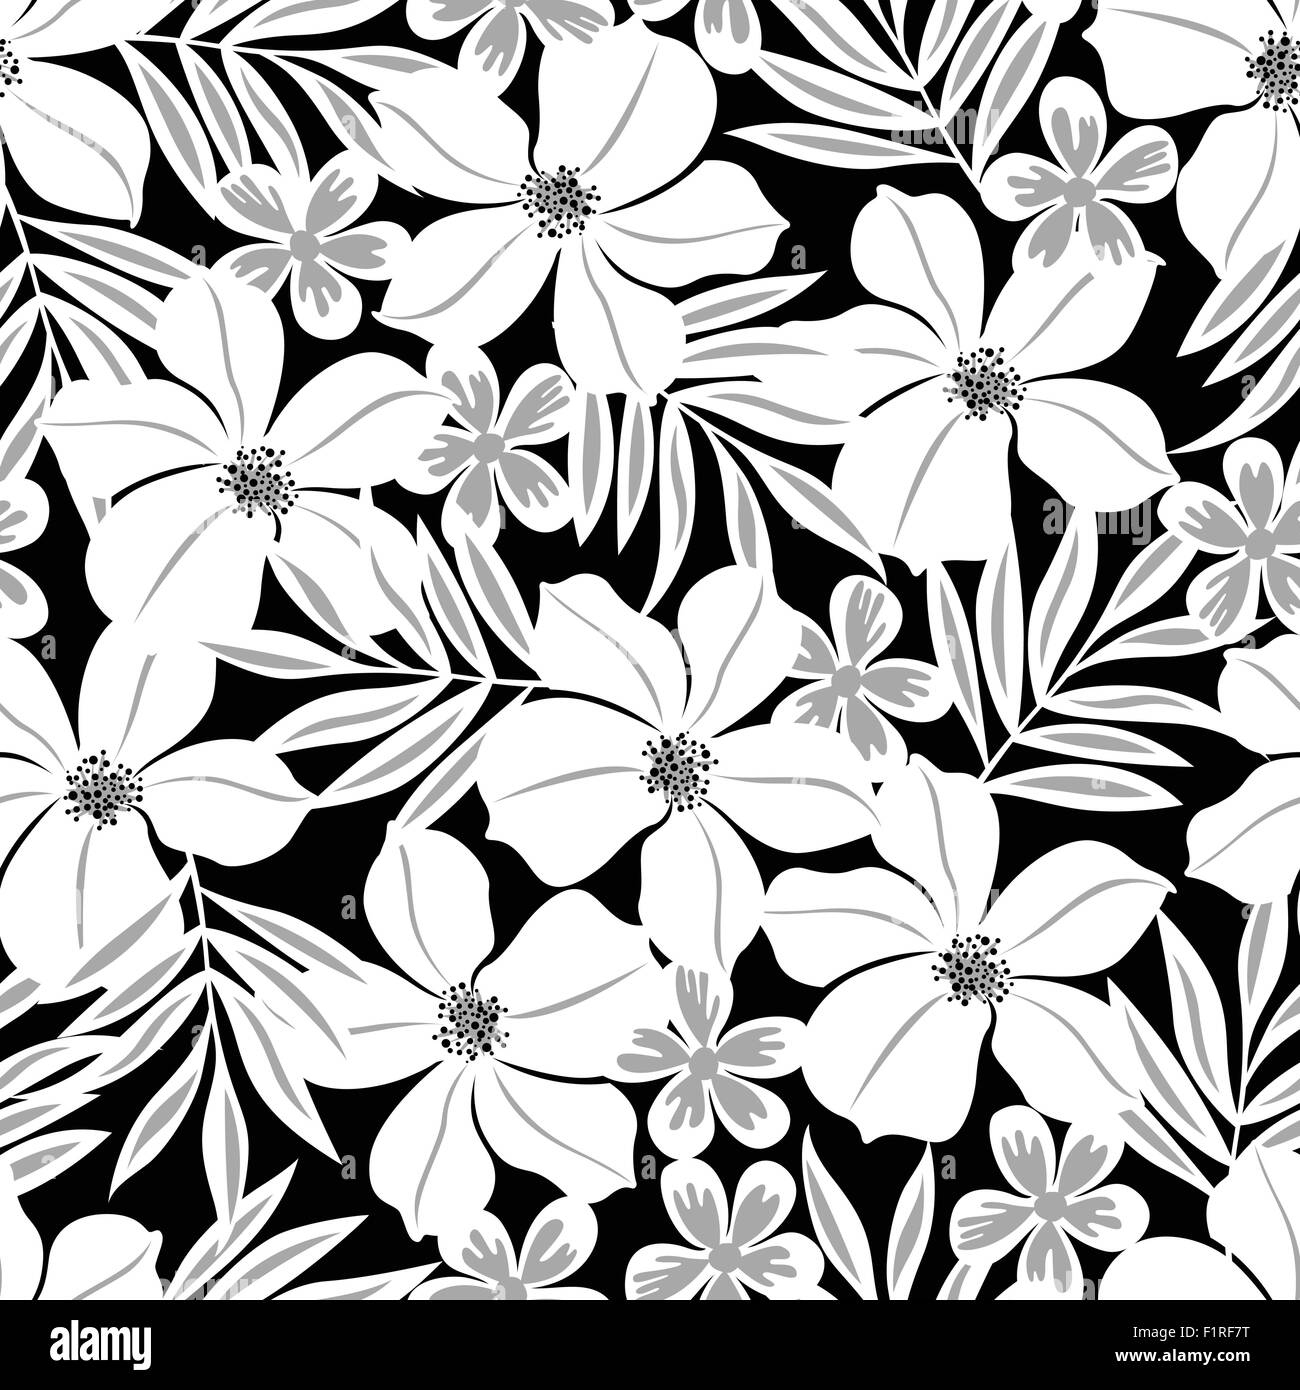 White Tropical Flower On A Black Background Seamless Pattern Stock